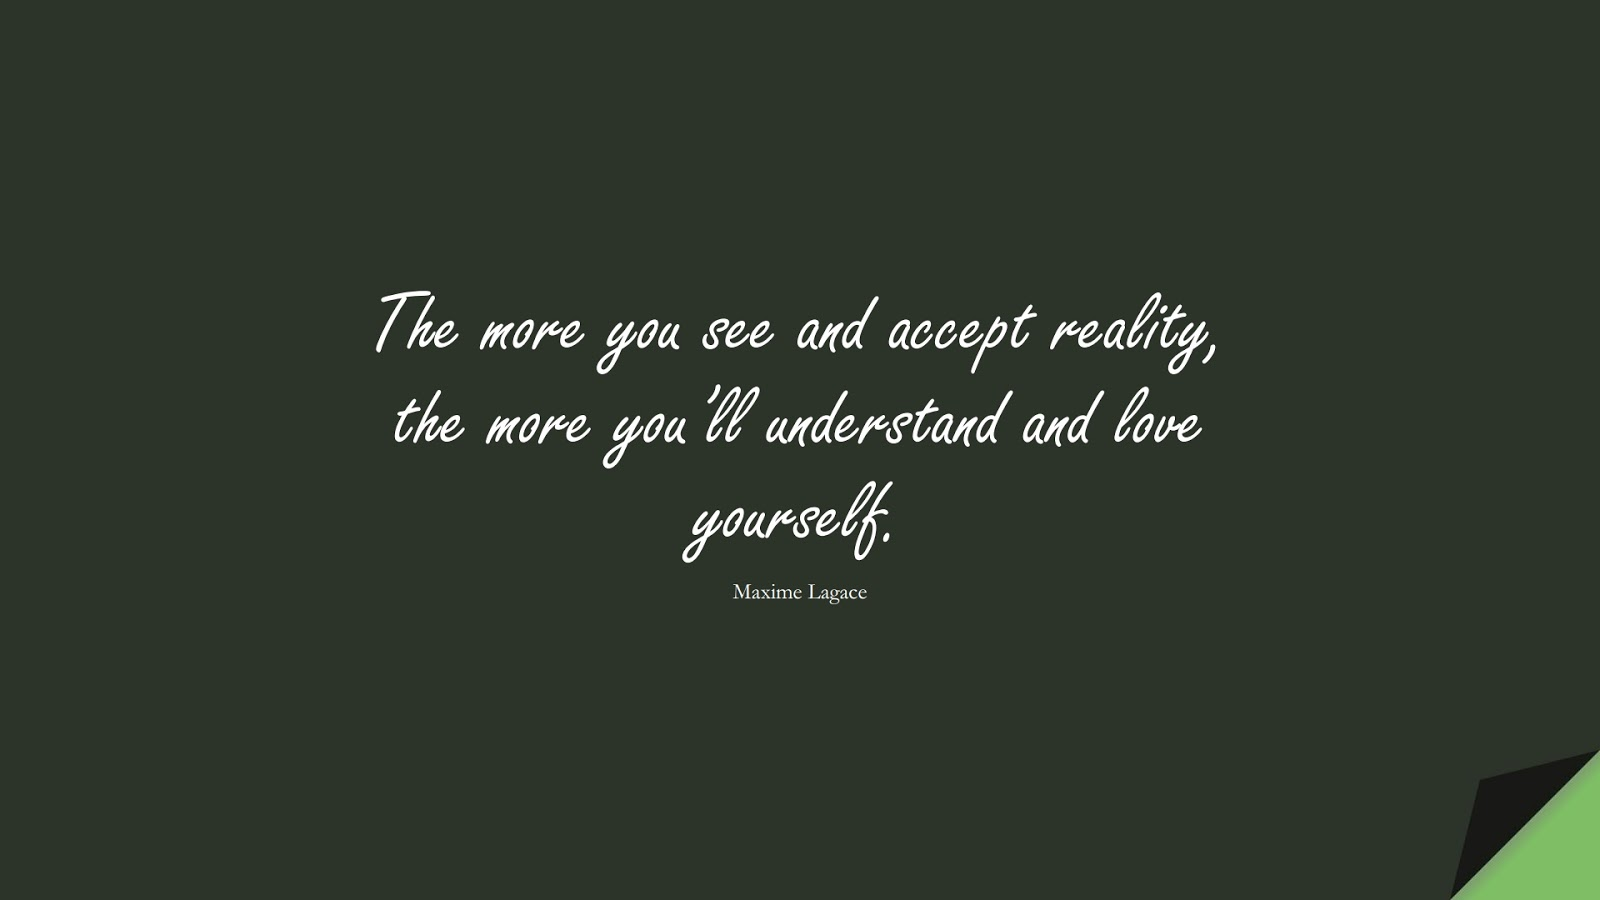 The more you see and accept reality, the more you'll understand and love yourself. (Maxime Lagace);  #DepressionQuotes